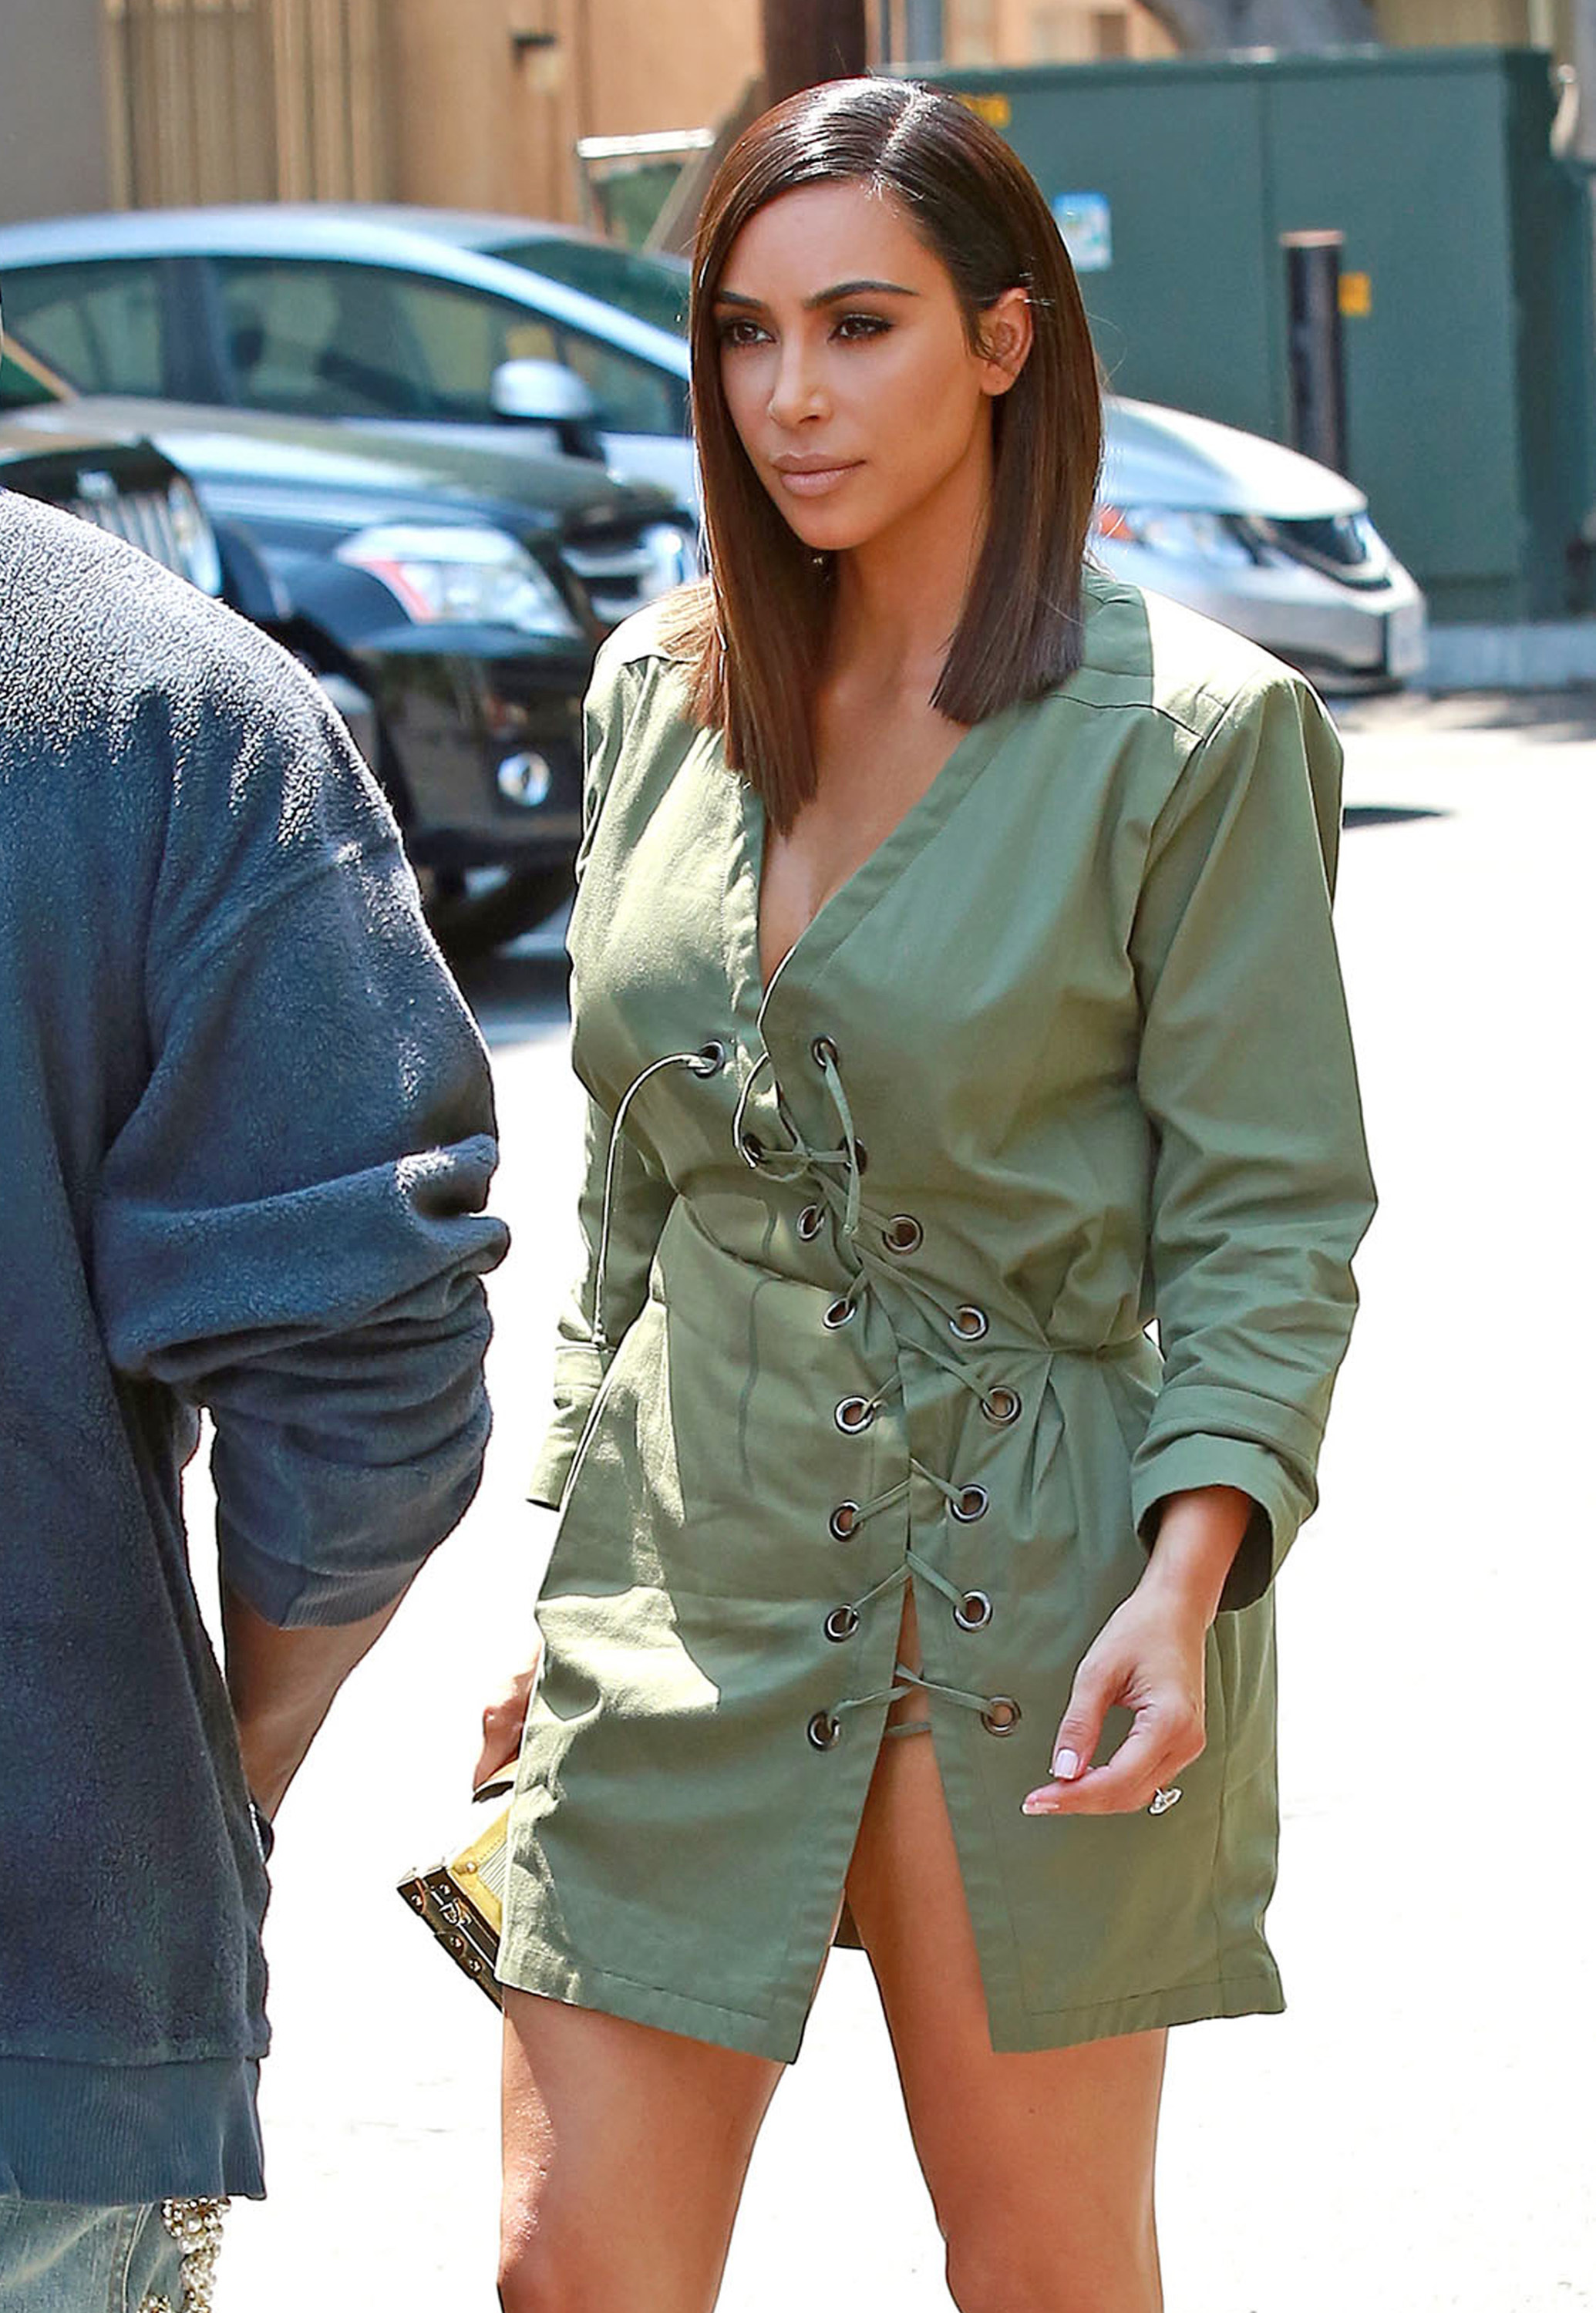 Kim Kardashian shows off a new look